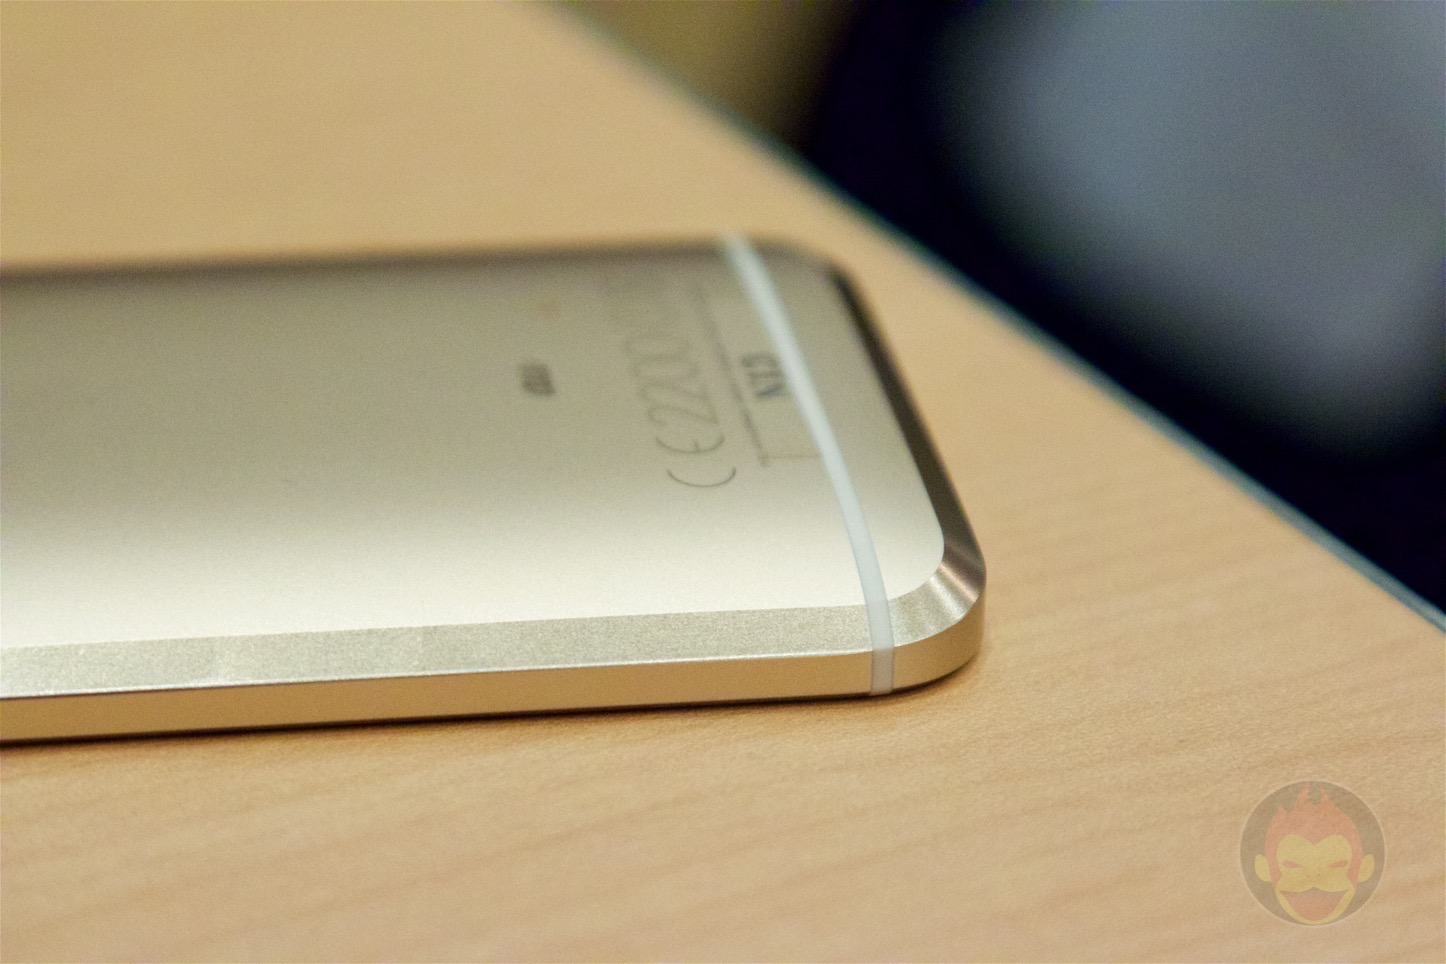 HTC-10-Hands-On-16.jpg